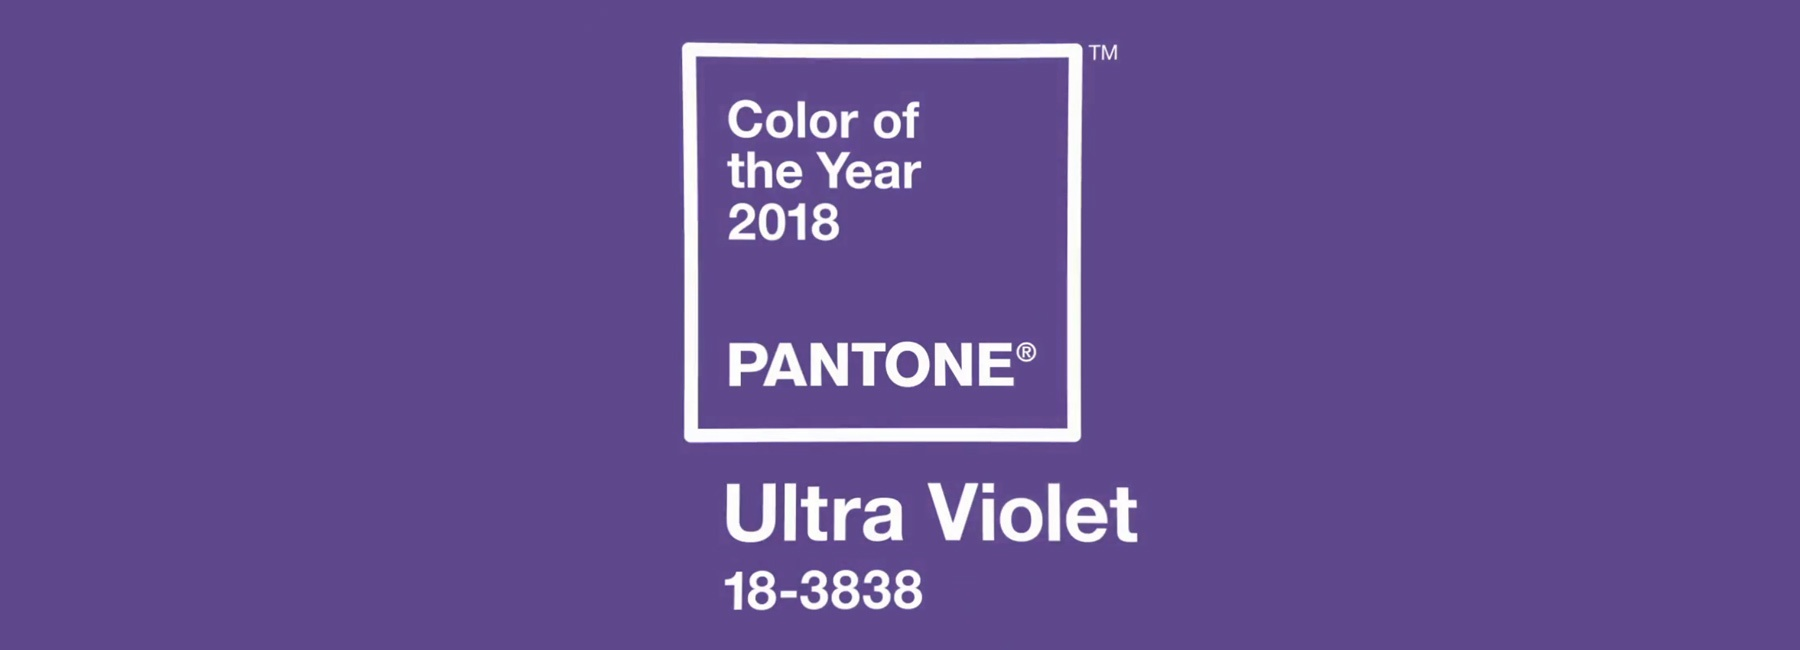 pantone-color-of-the-year-2018-ultra-violet-designboom-1800.jpg